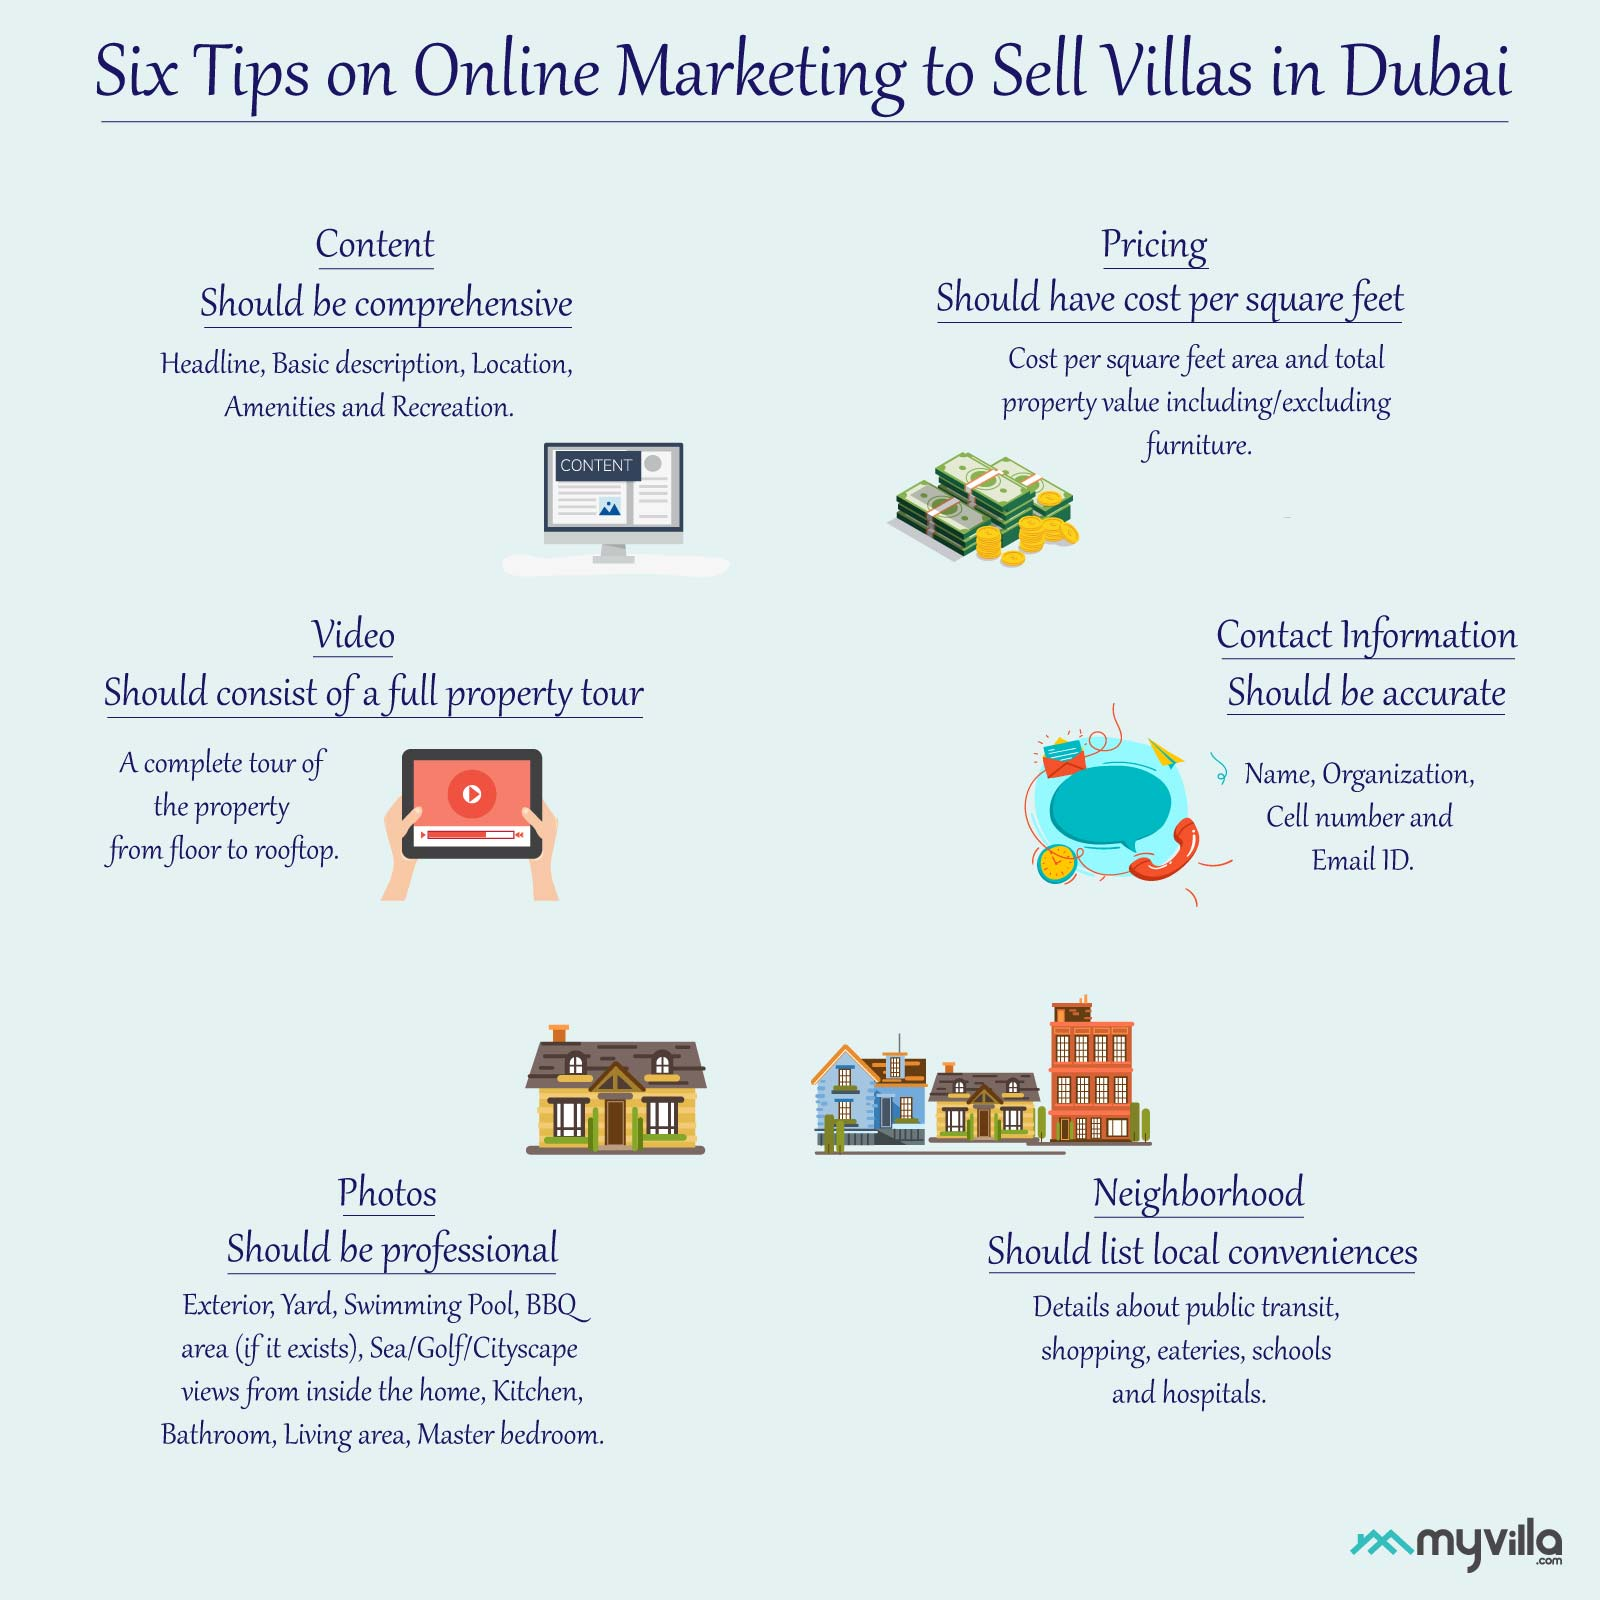 Six Tips on online marketing to sell villas in Dubai